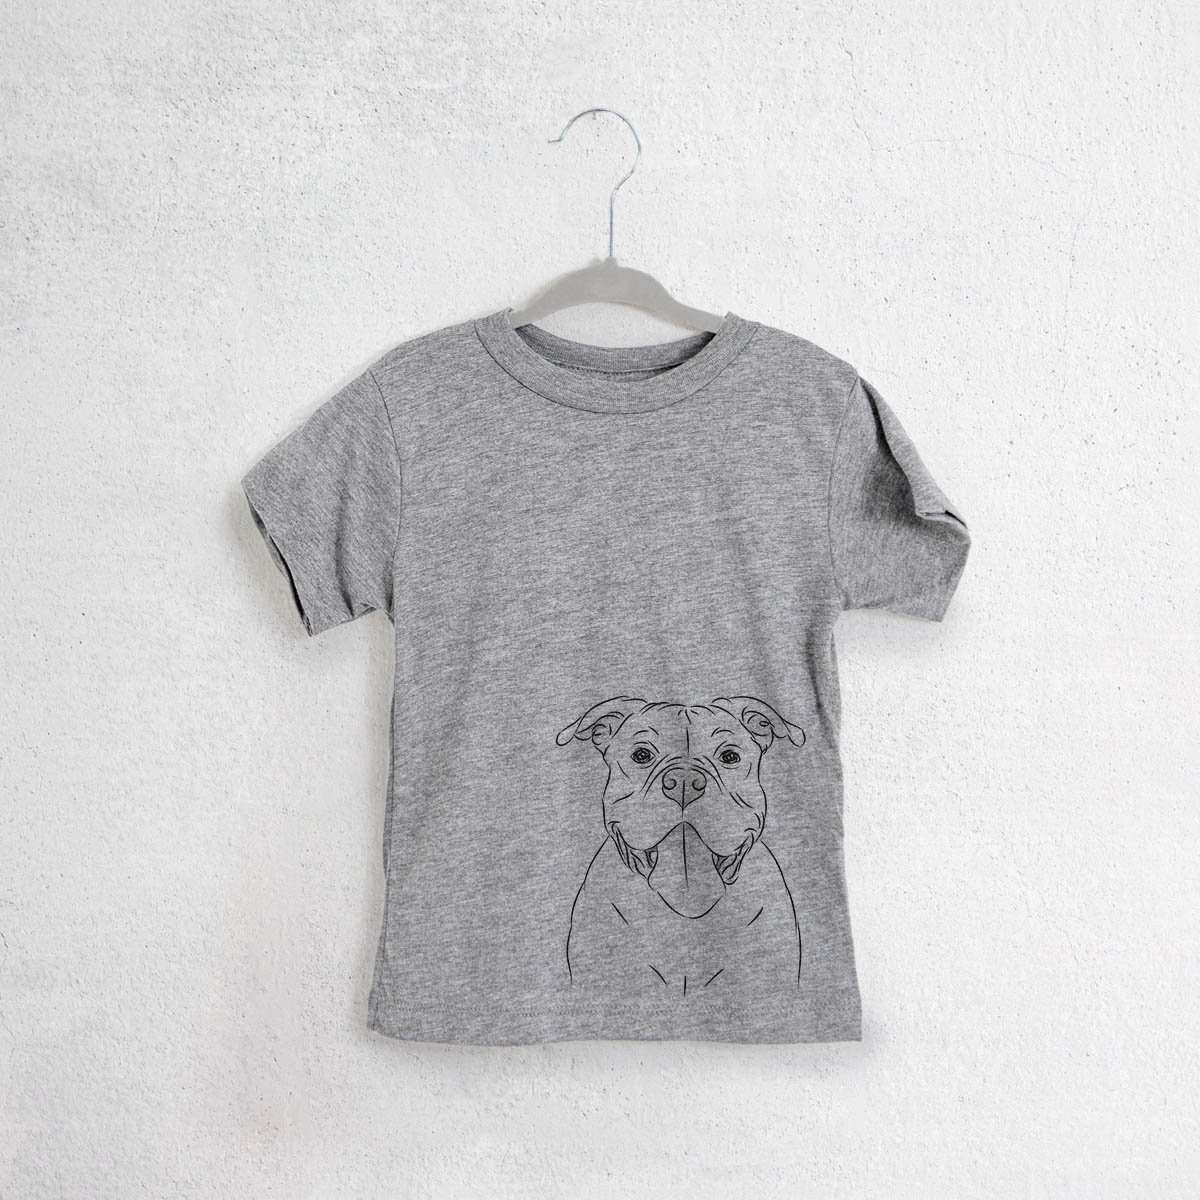 Nacho the American Bully - Kids/Youth/Toddler Shirt